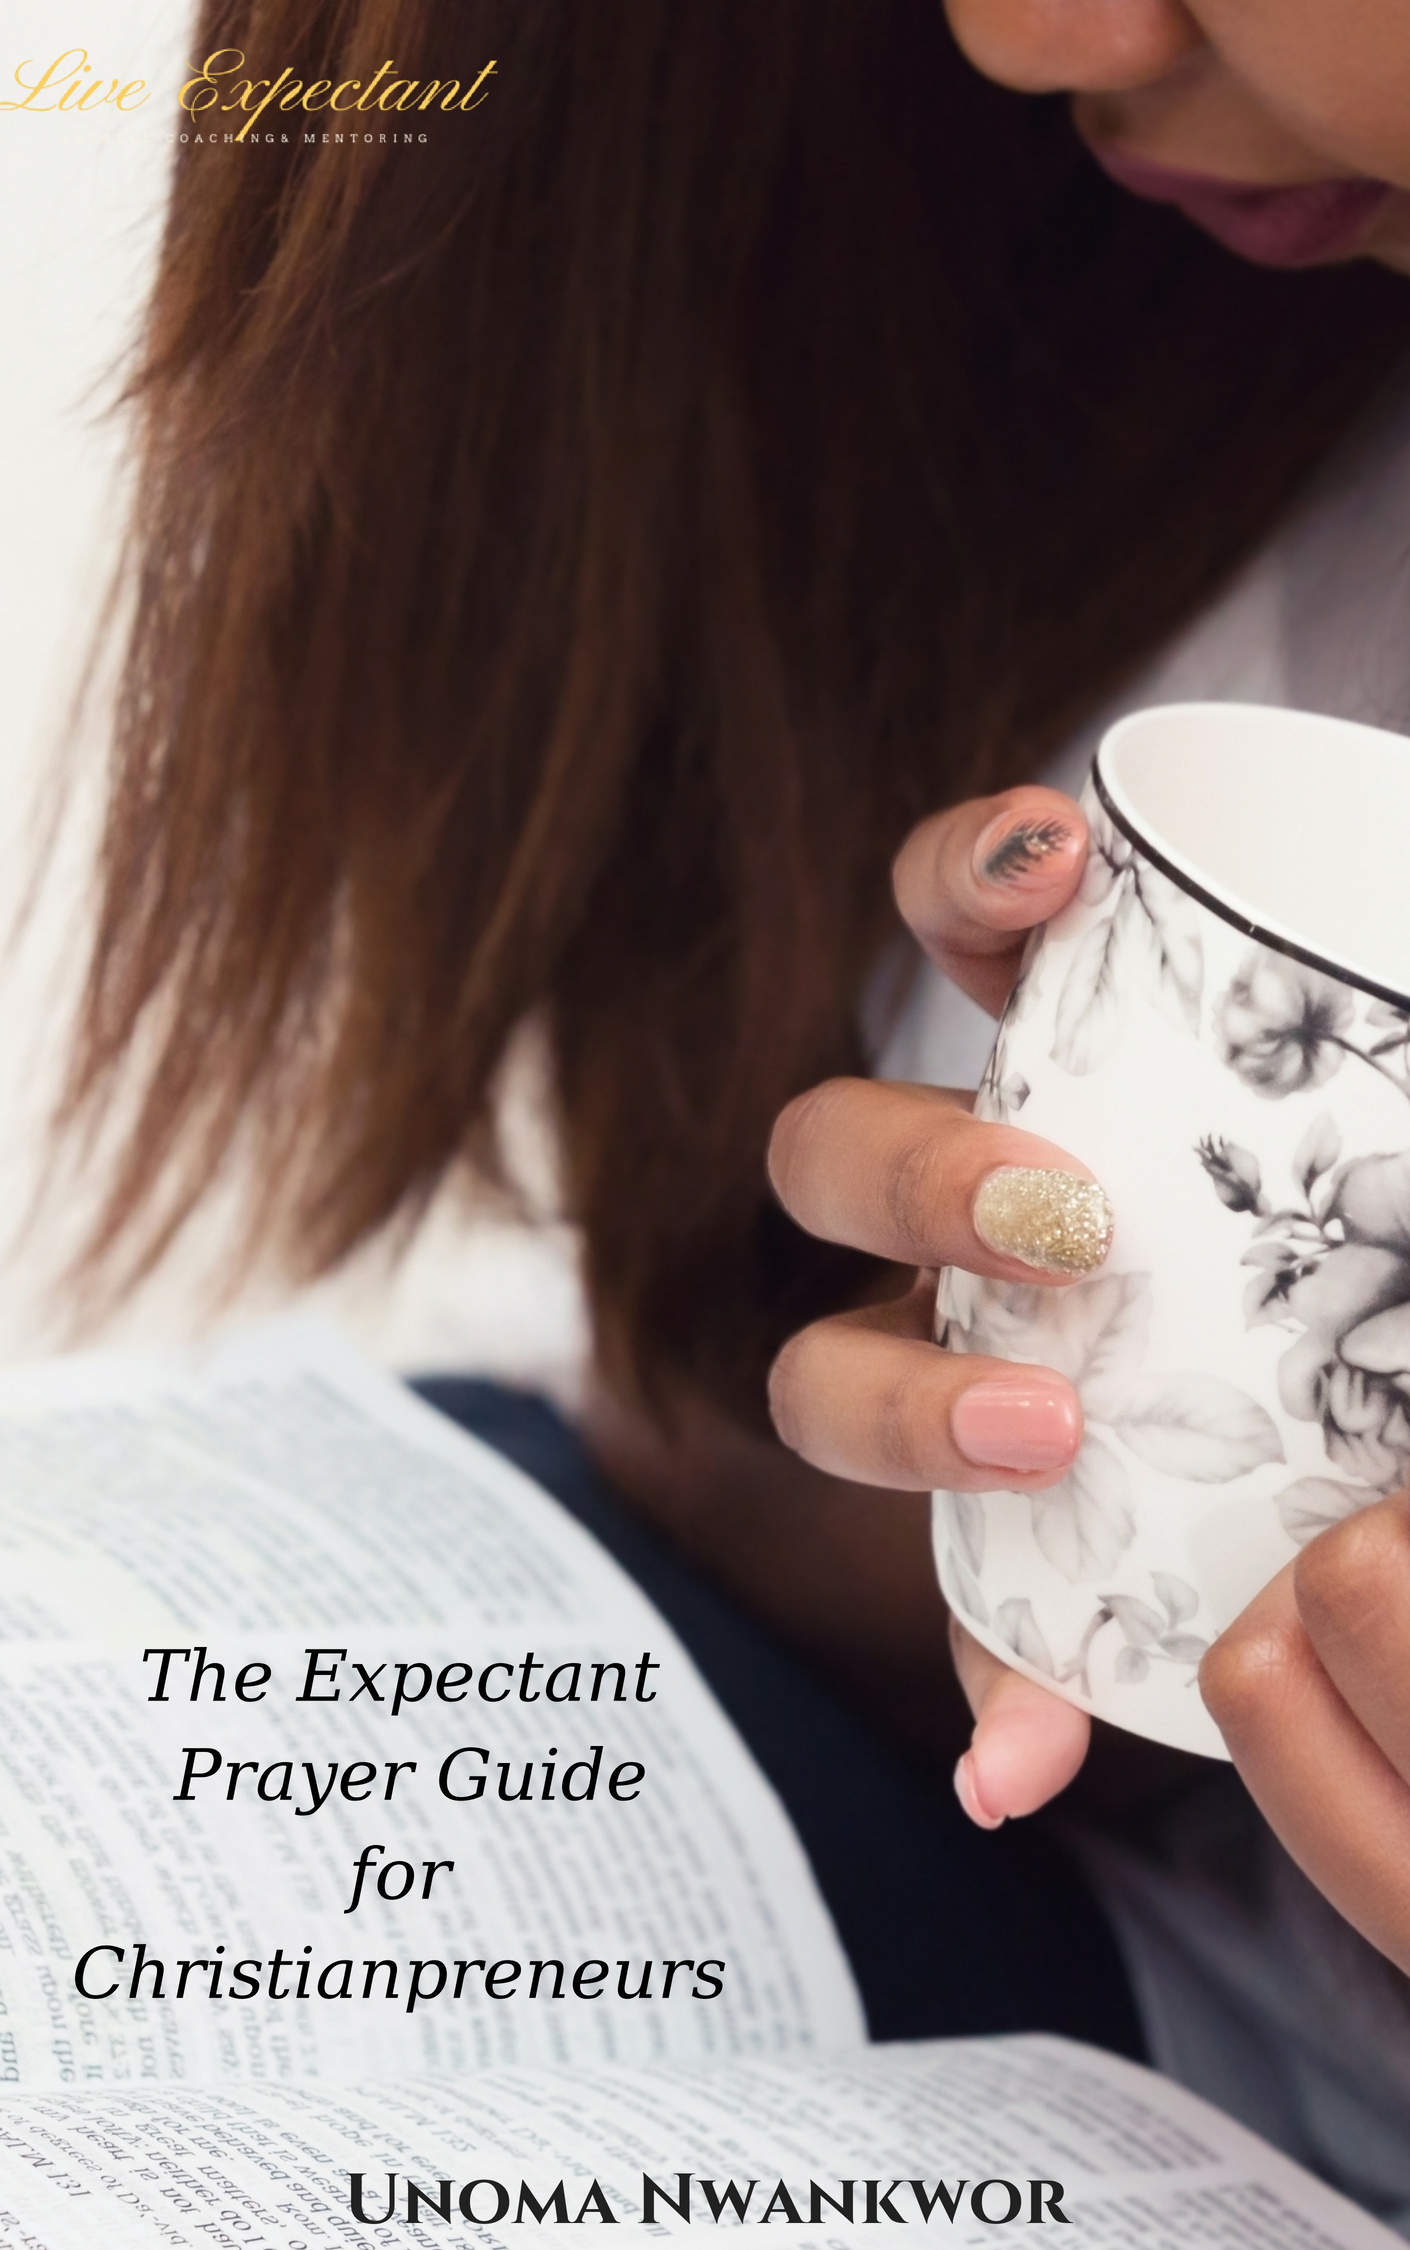 The Expectant Prayer Guide